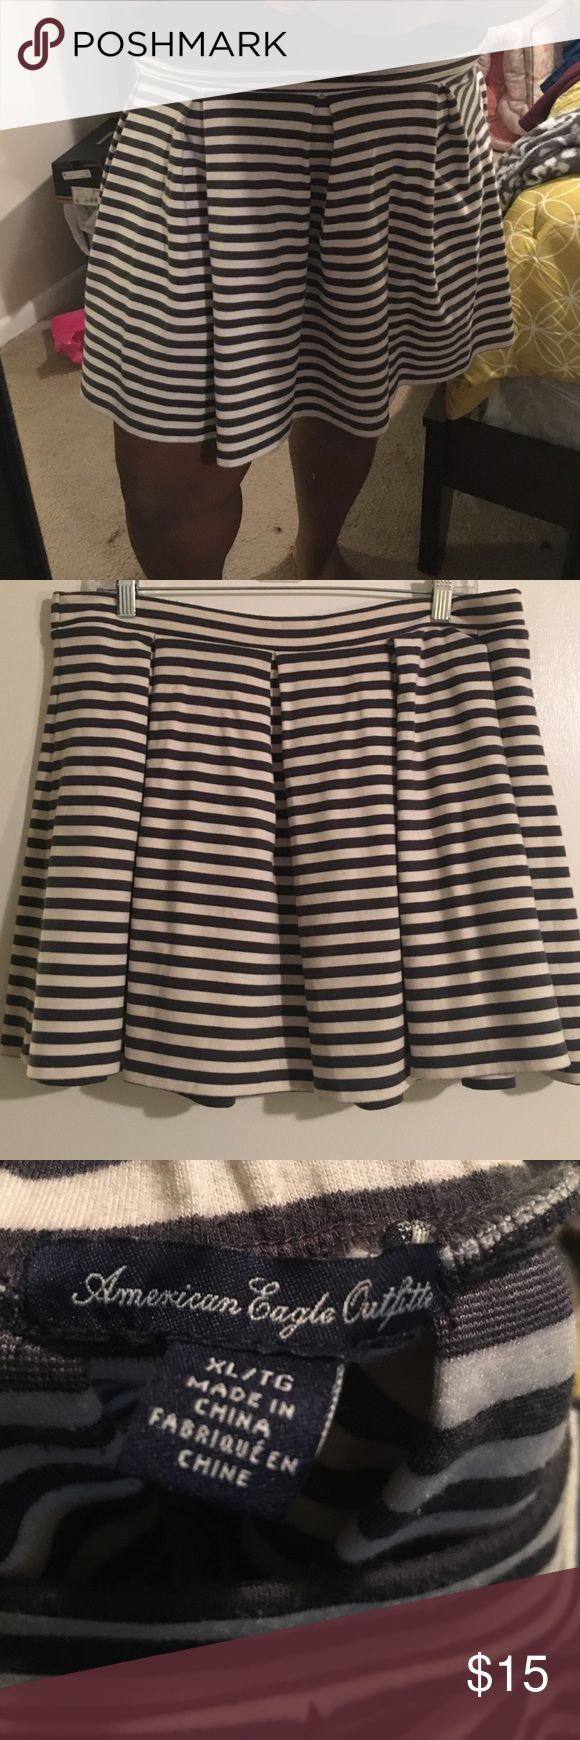 American Eagle Outfitters Skater Skirt Cute skirt. American Eagle Outfitters skater skirt. Striped gray and white. LOVE it, just feel that it's too short for me. American Eagle Outfitters Skirts Circle & Skater